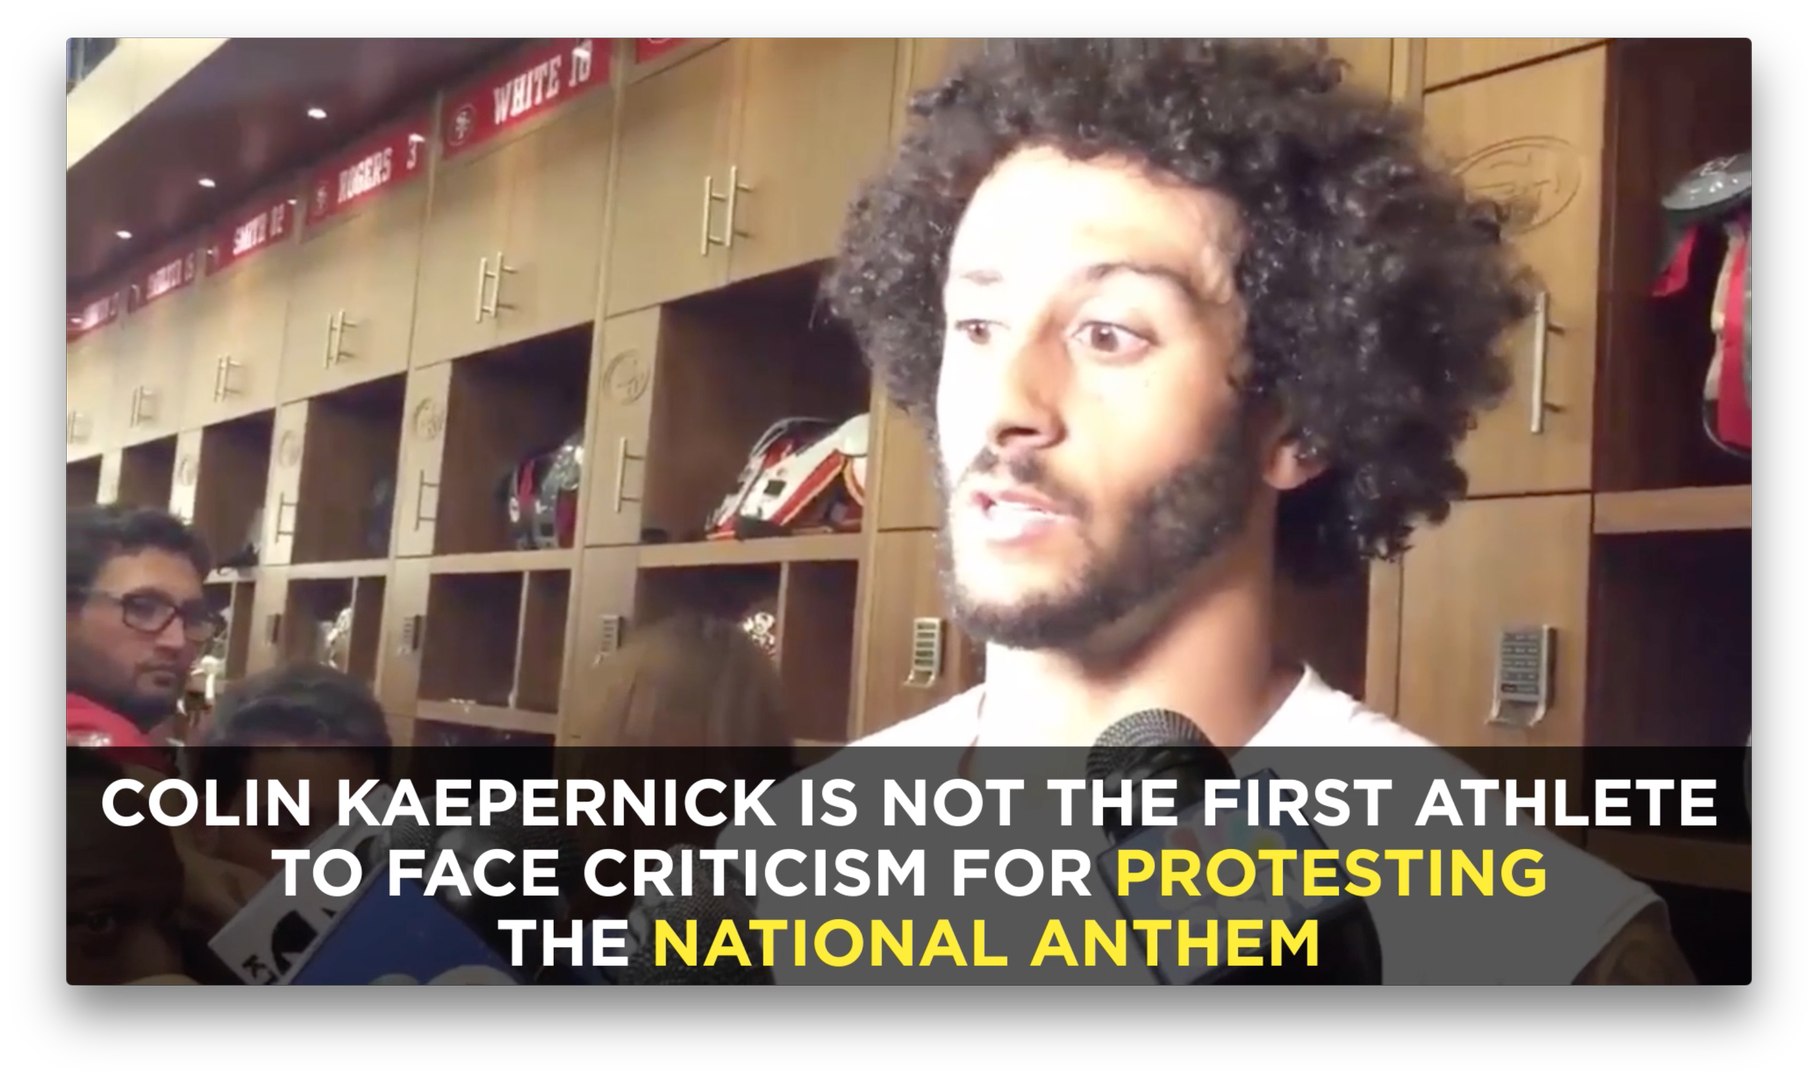 Colin Kaepernick Refused To Stand For The National Anthem Of A